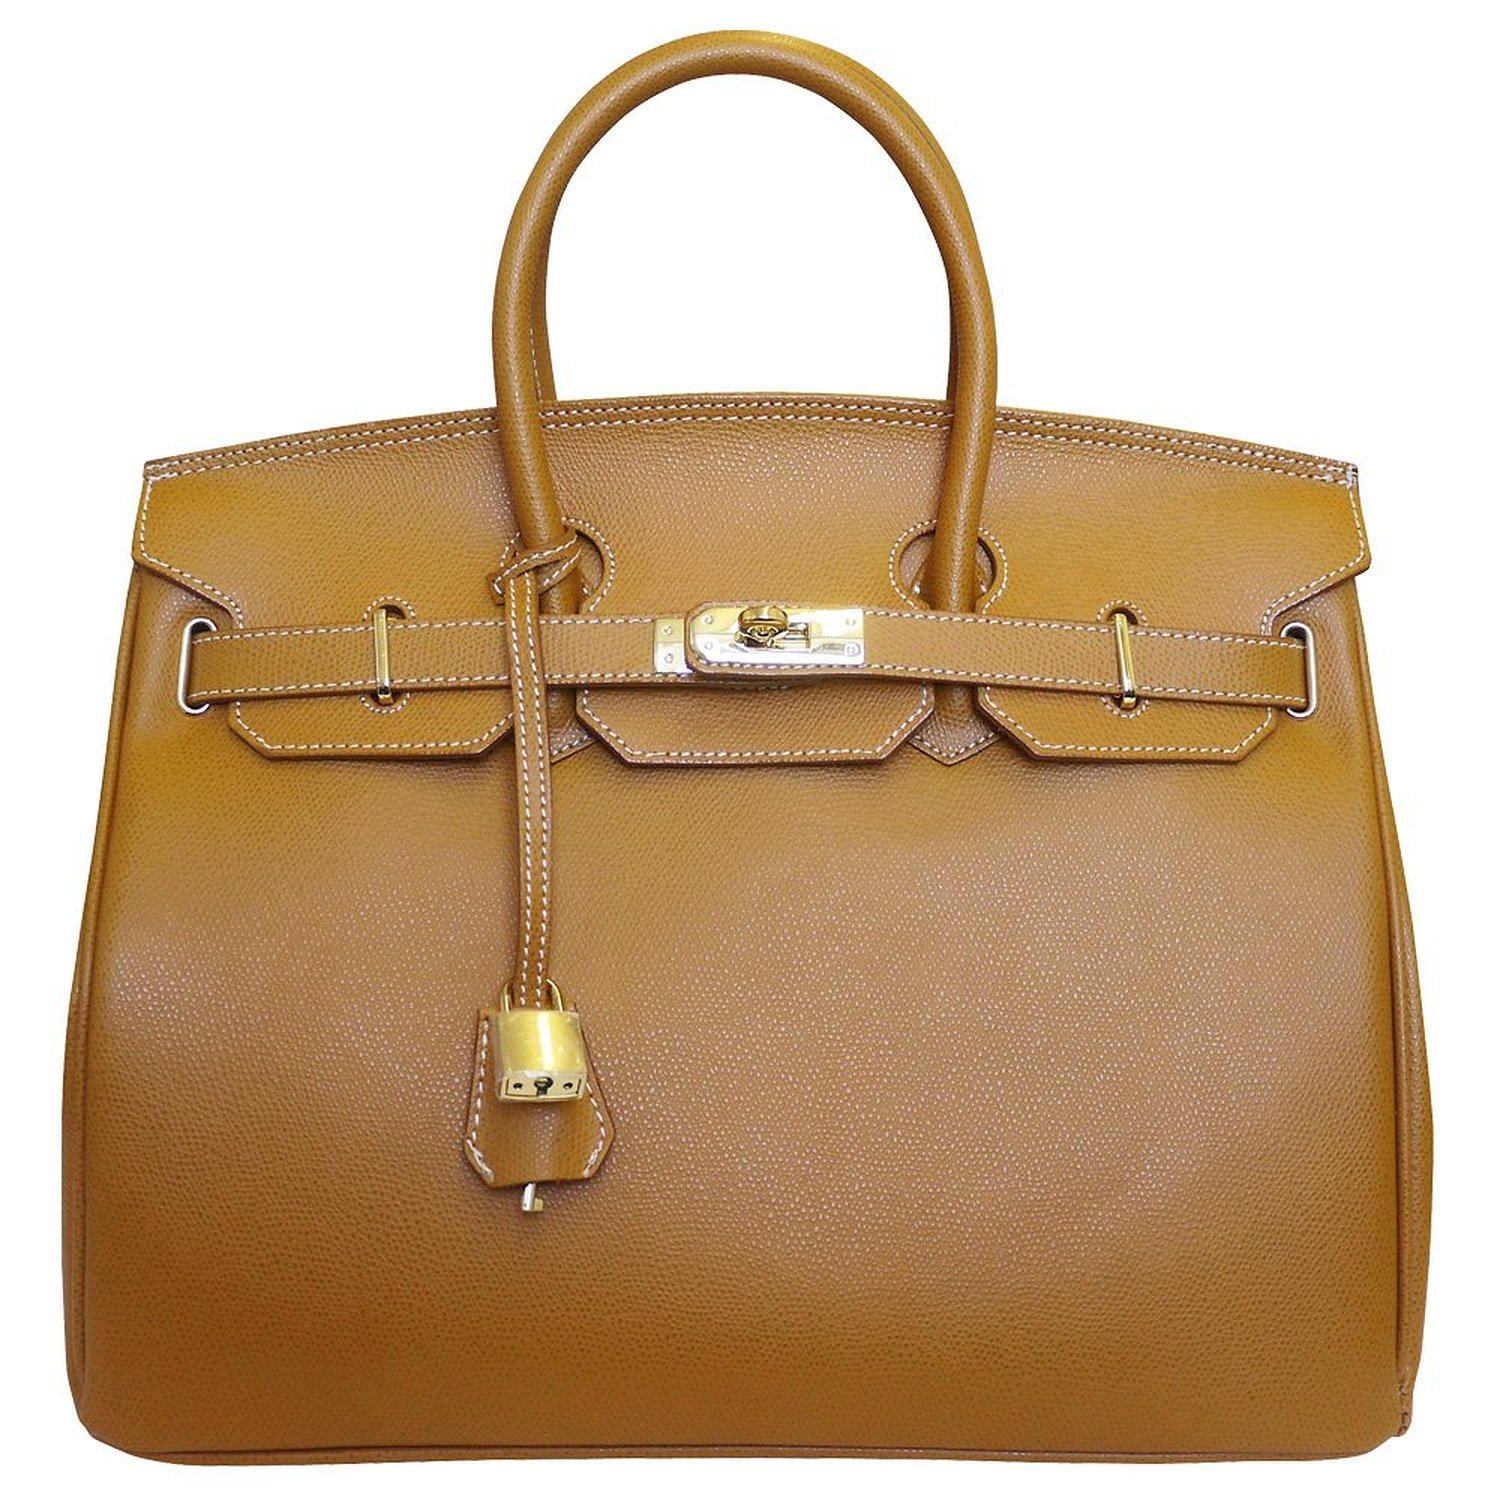 Carbotti Birkin Inspired Style Classico Leather Handbag 35cm Tan